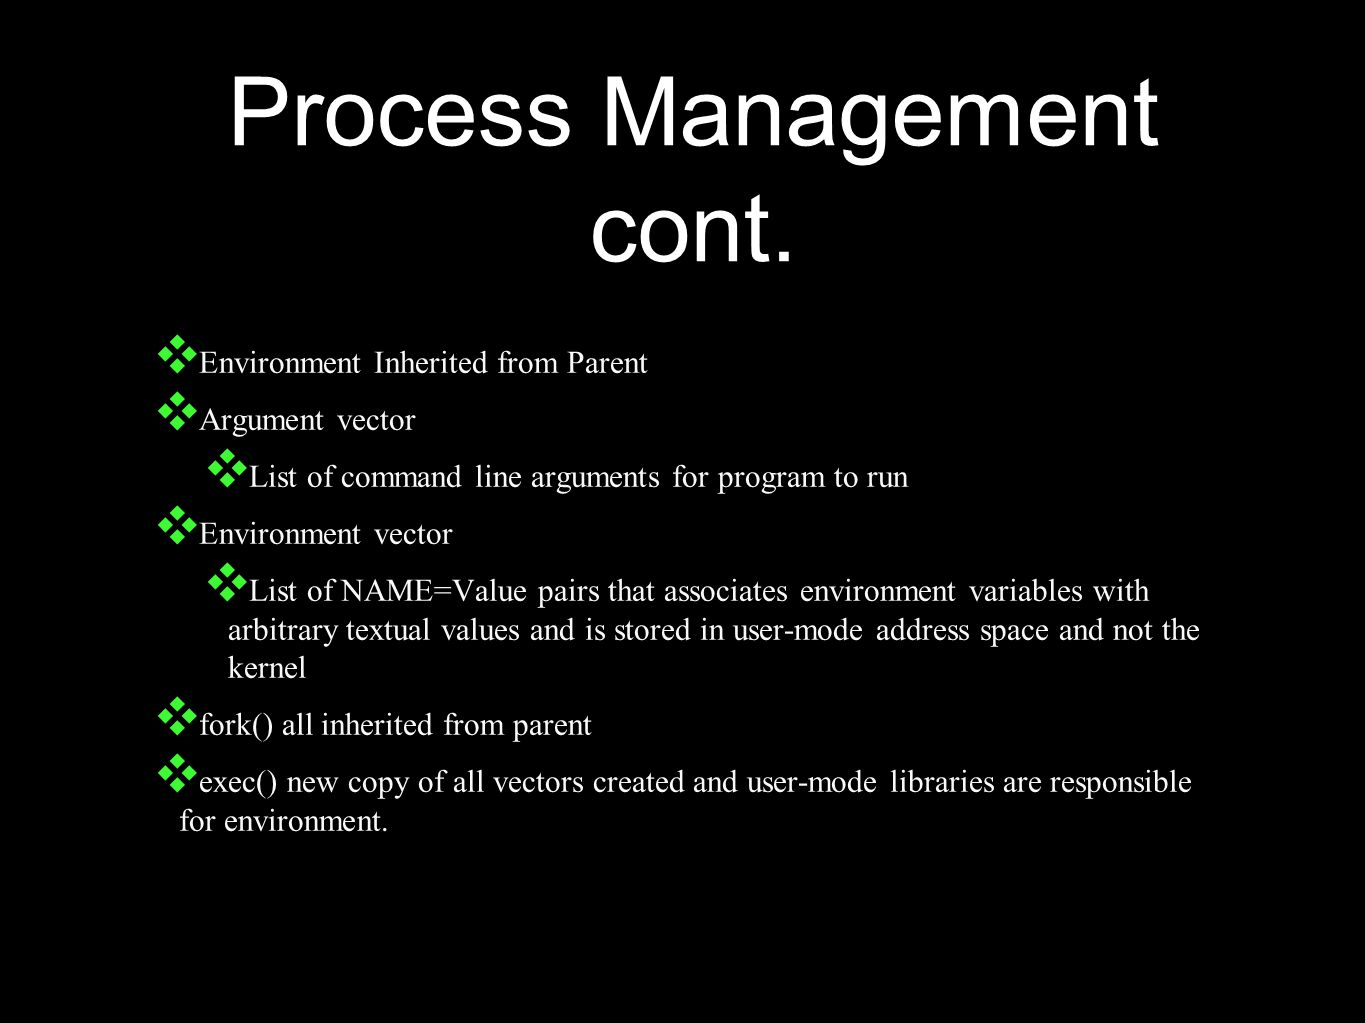 Process Management cont.